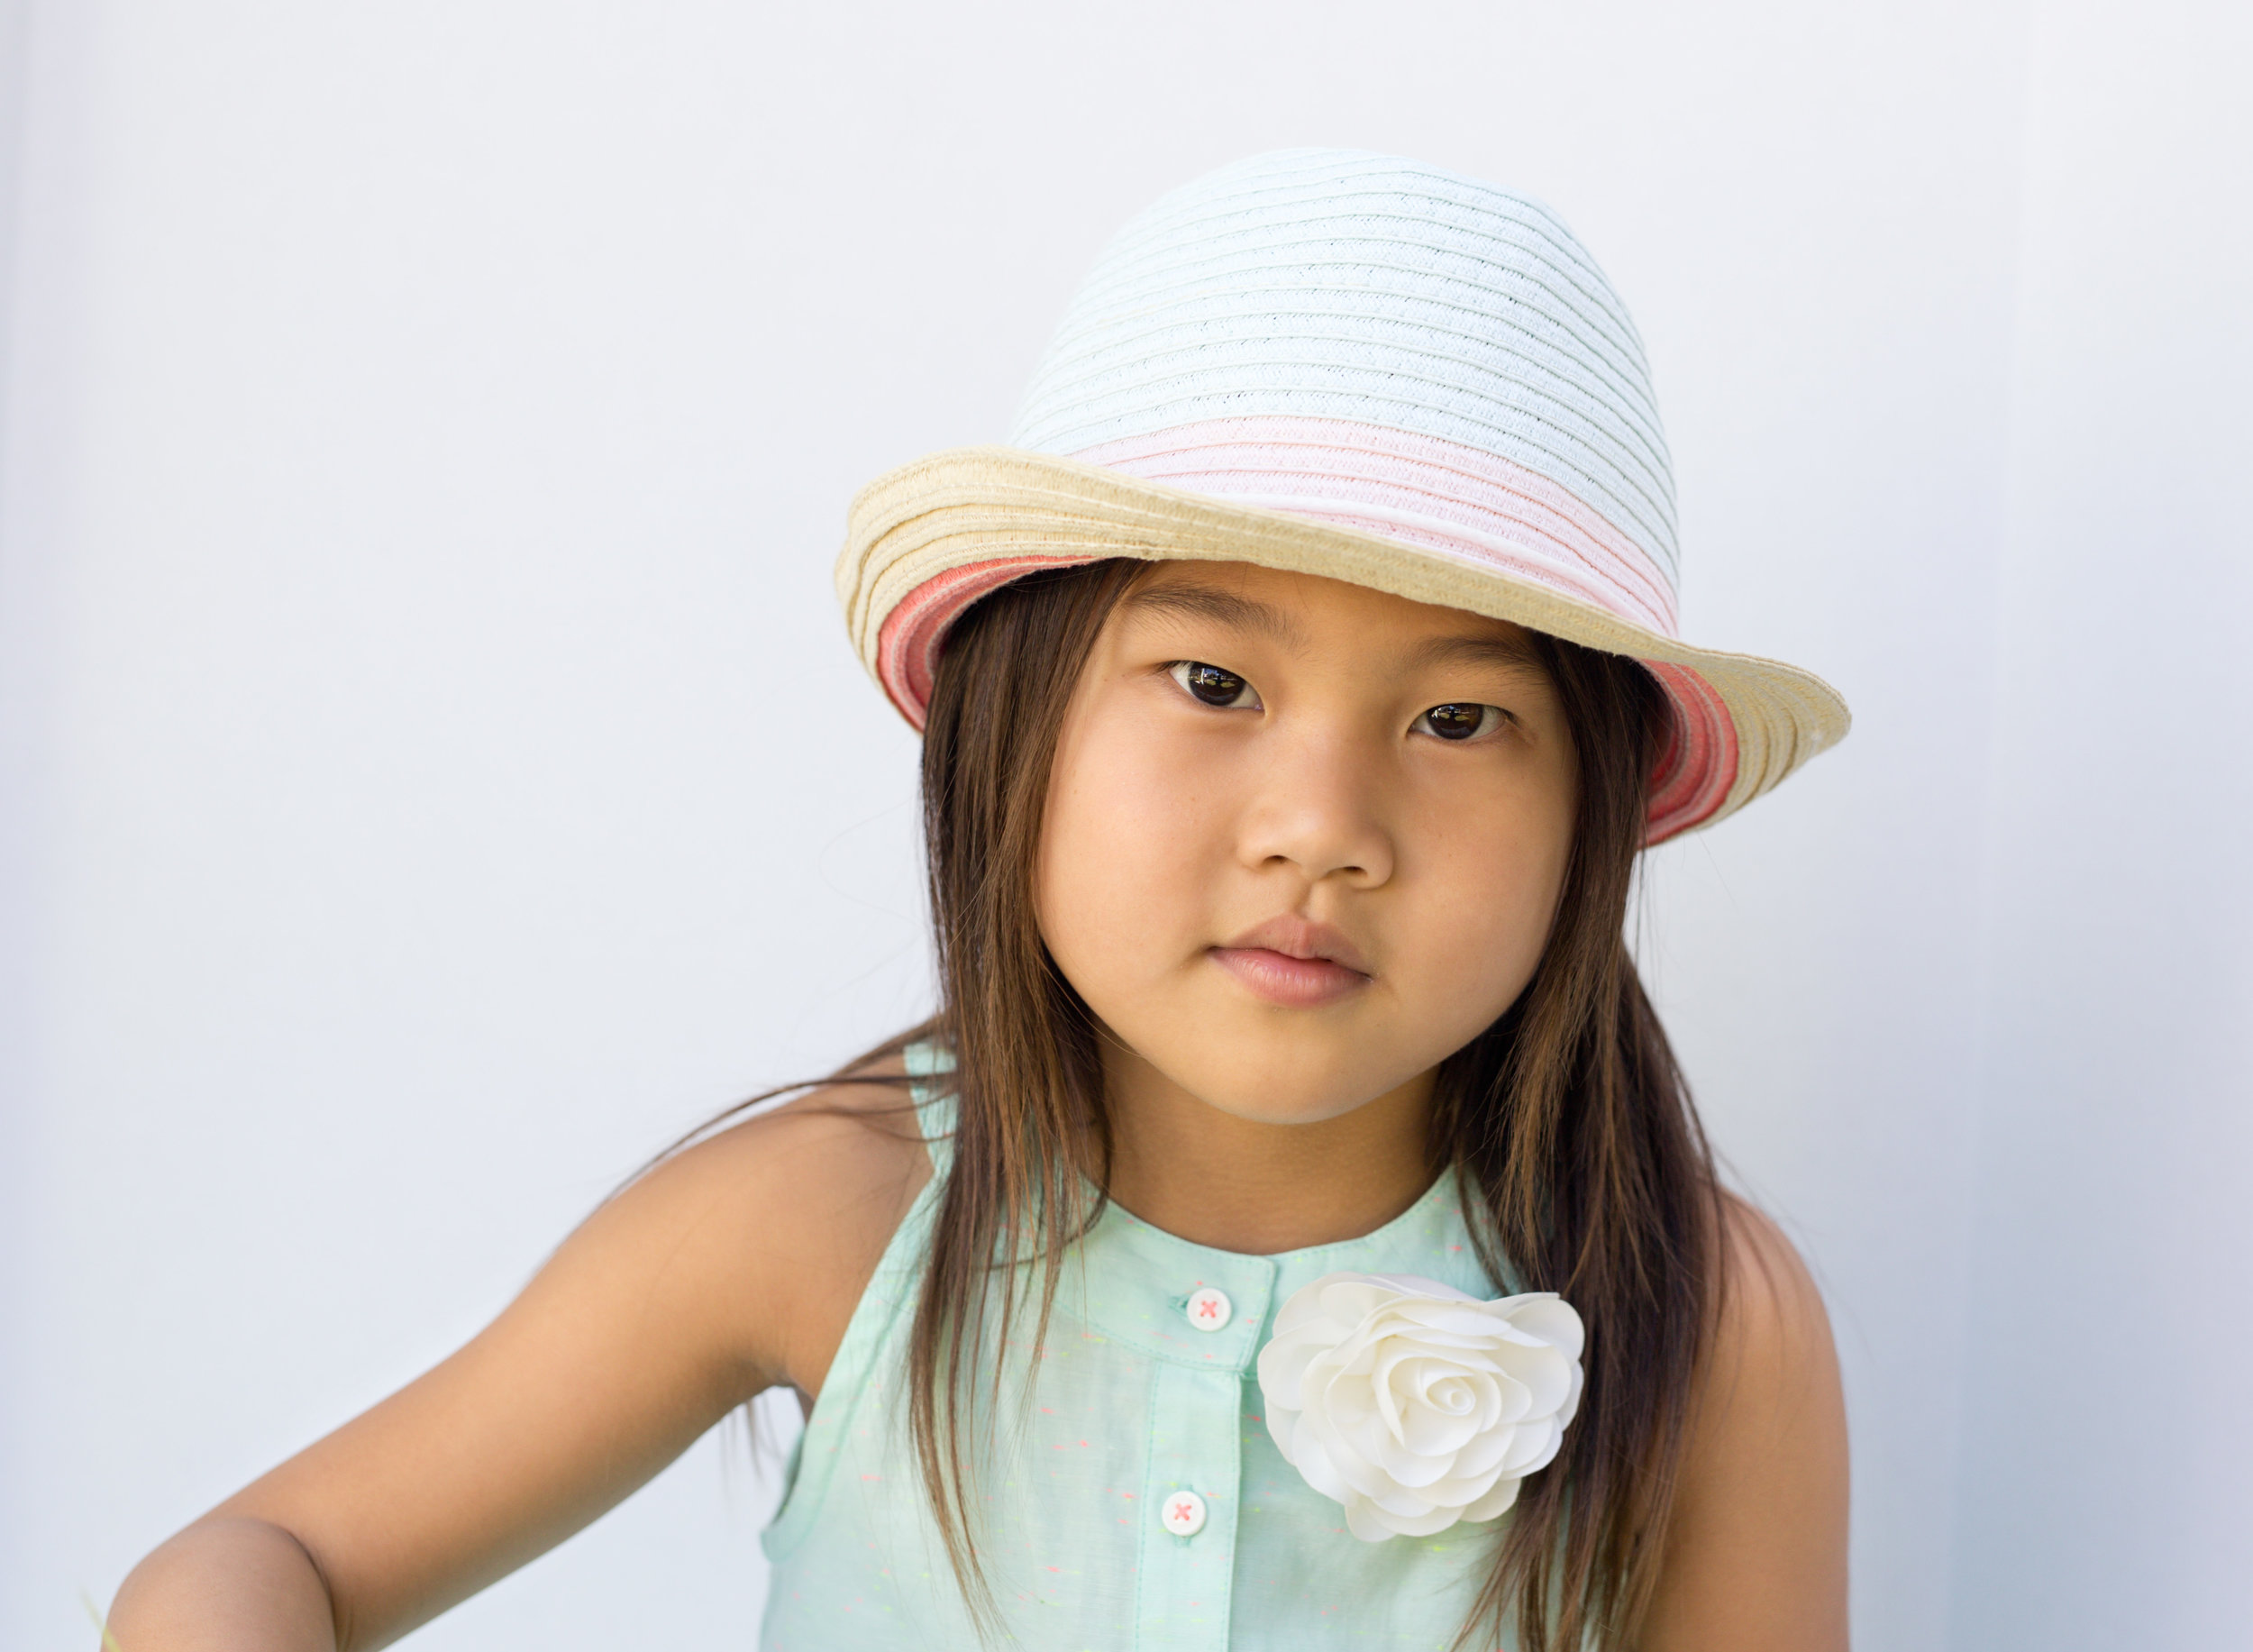 boca-raton-child-photographer-kid-model-head-shot-headshot-headshots-parkland-coral-springs-miami-fort-lauderdale-alissa-delucca-photography-chinese-girl-hat.jpg